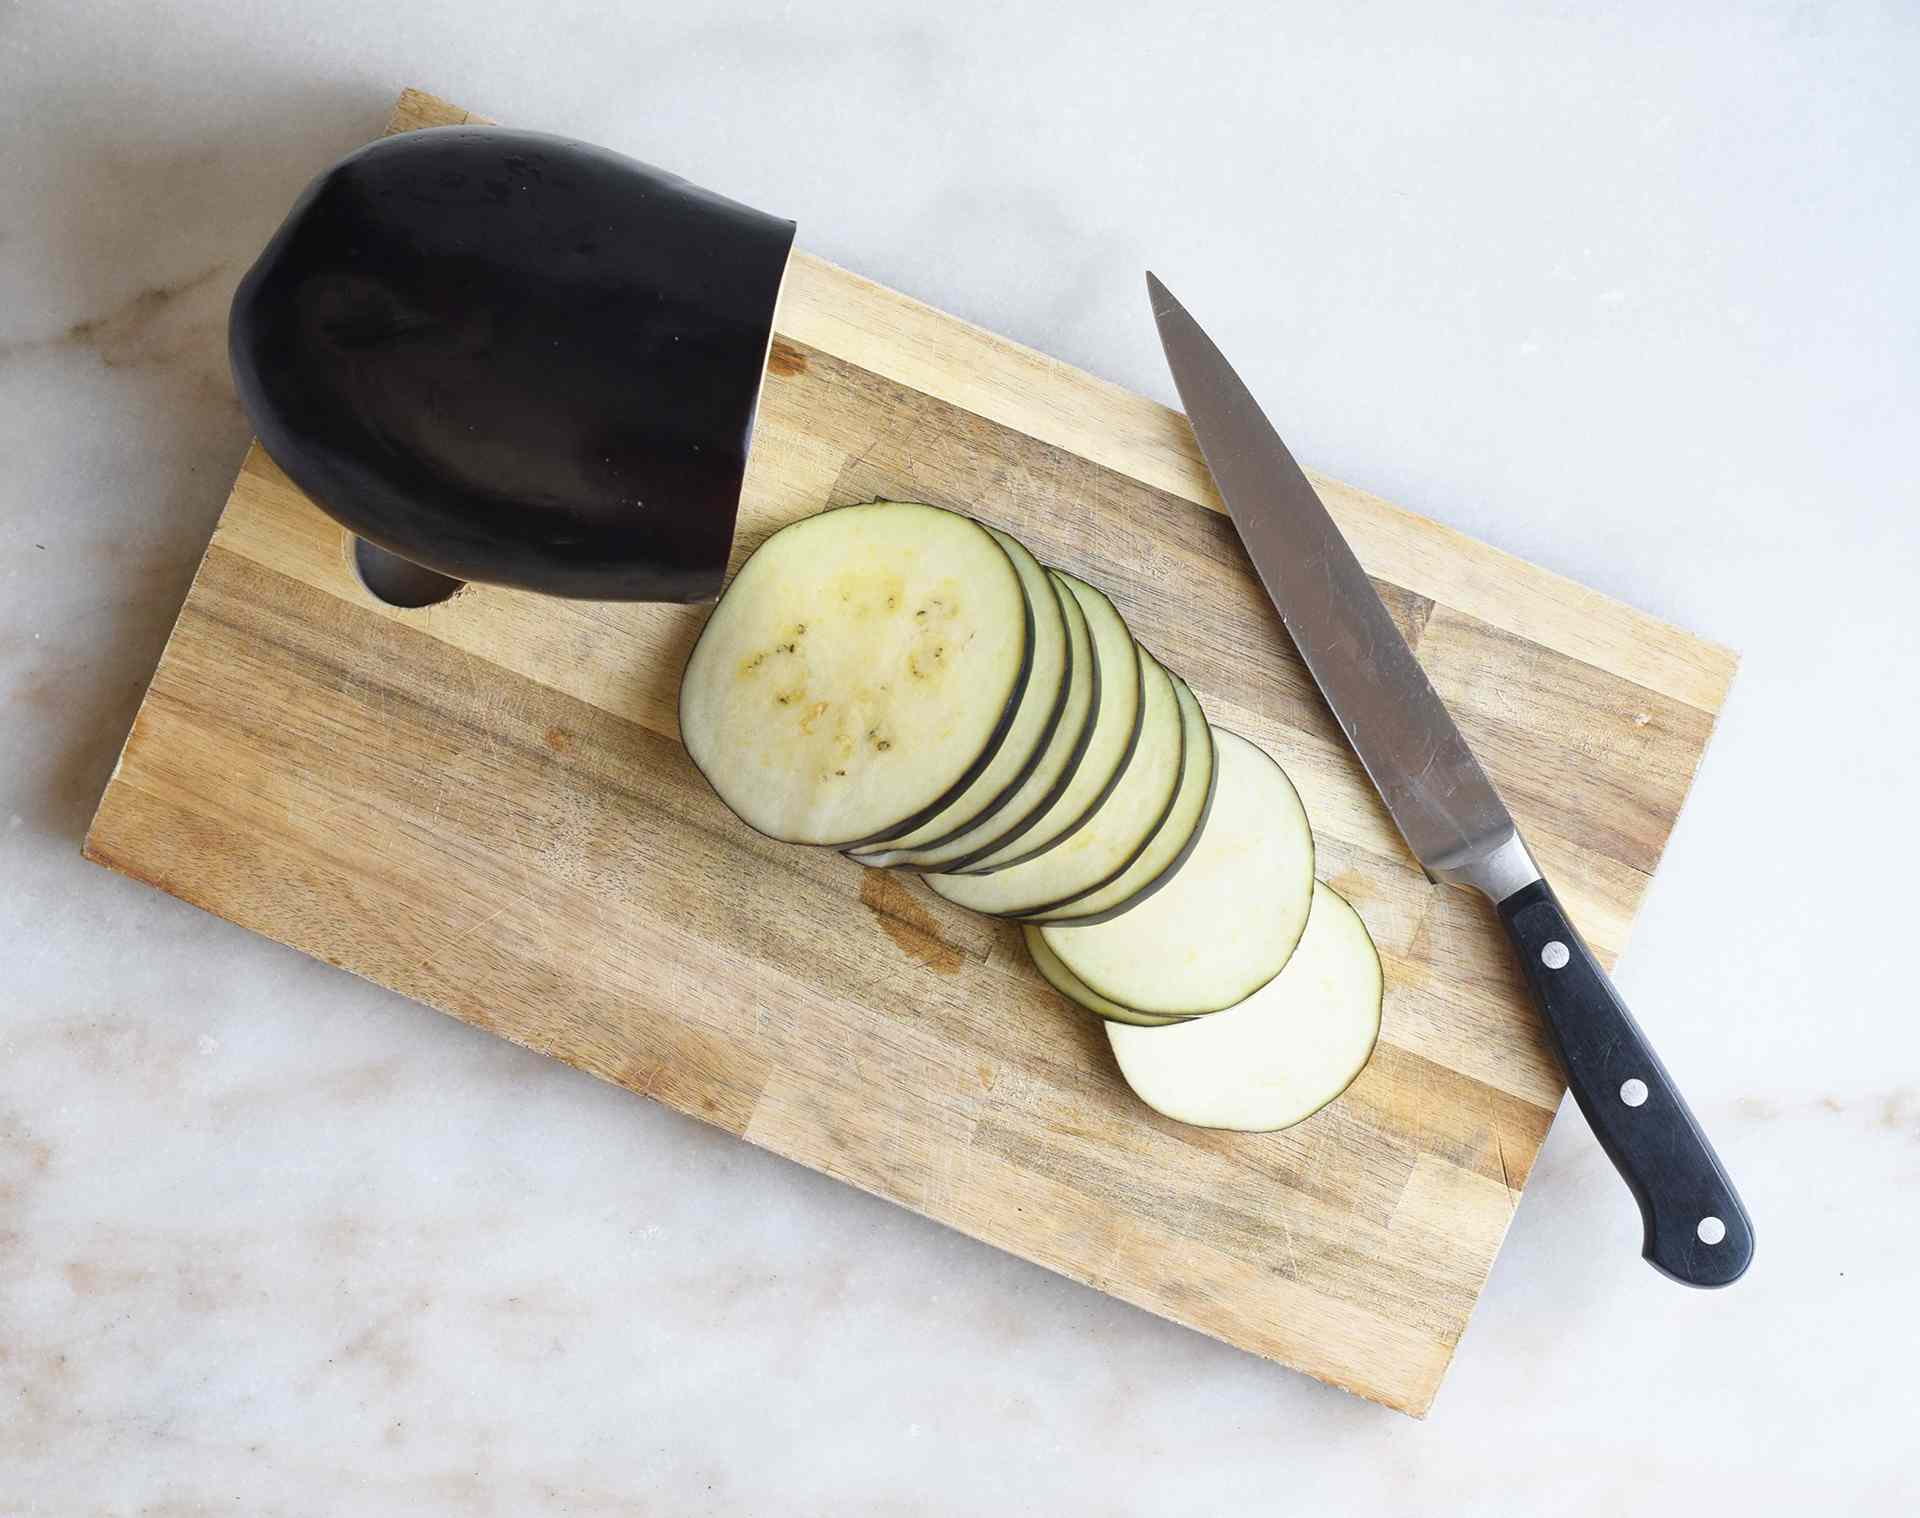 eggplant cut into thin rounds